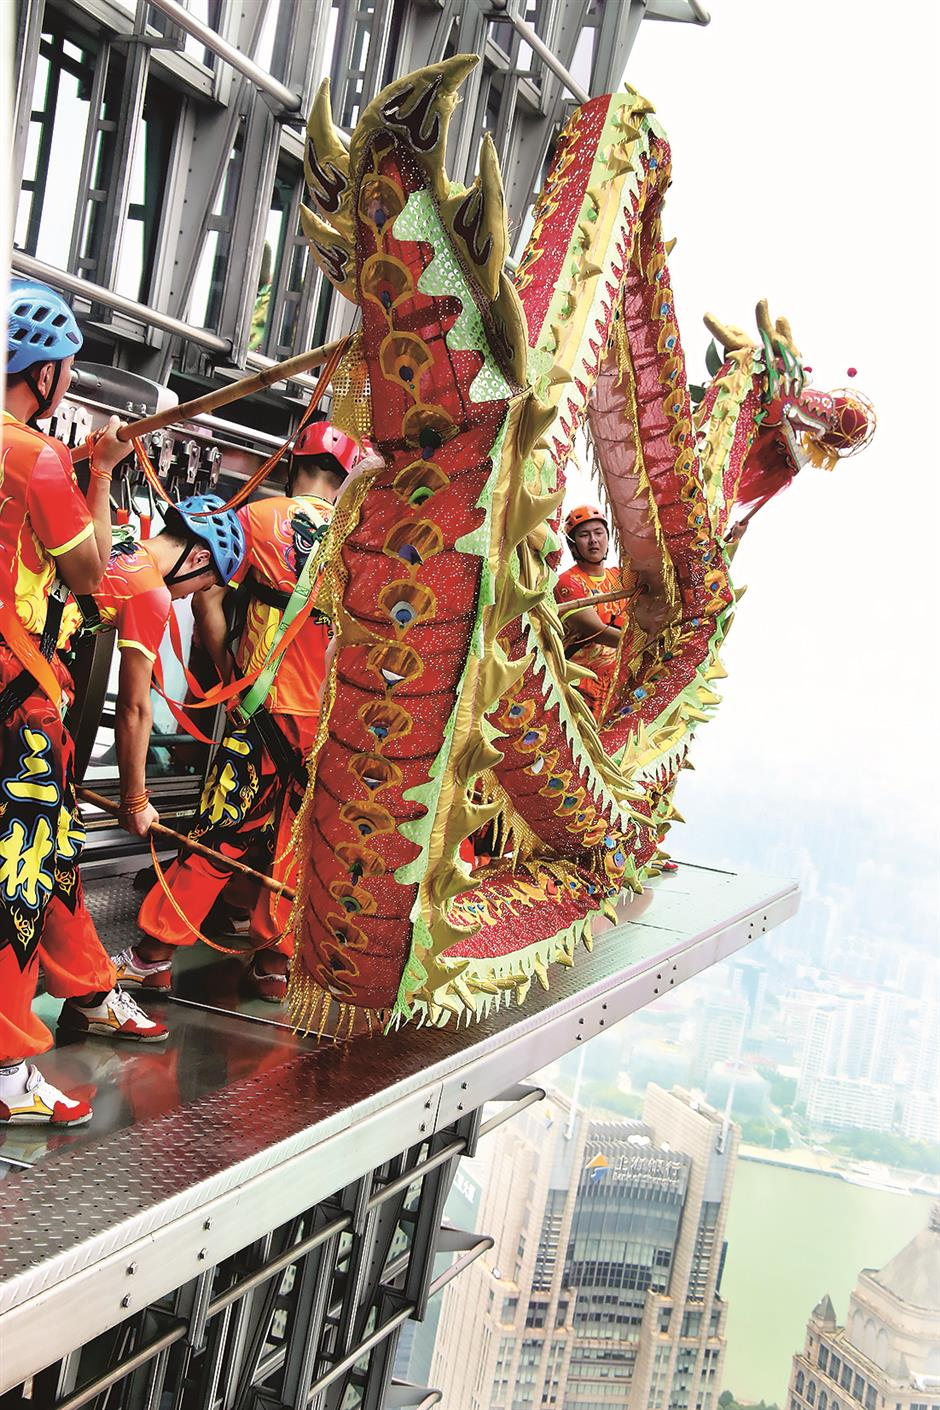 Dancing lions and dragons: the soul of China